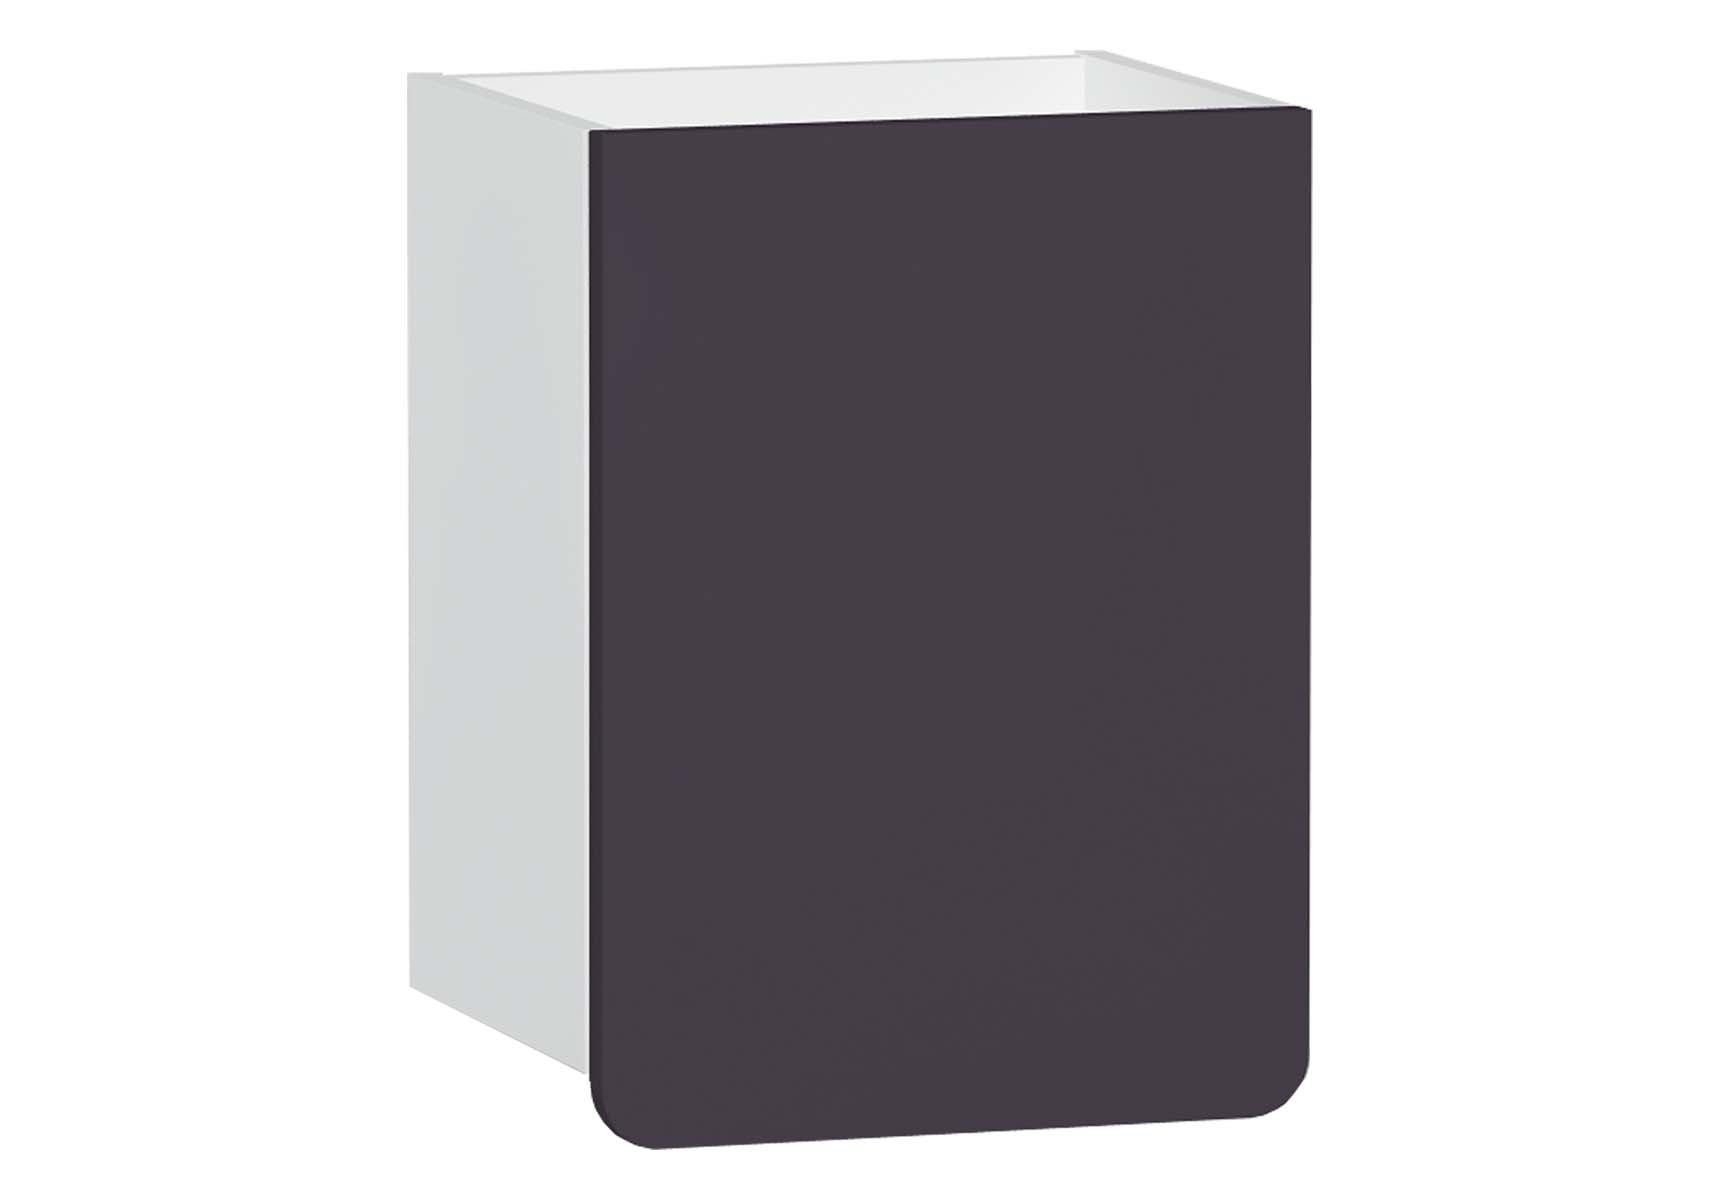 D-Light Side Unit, 40 cm, Matte White & Purple, Left